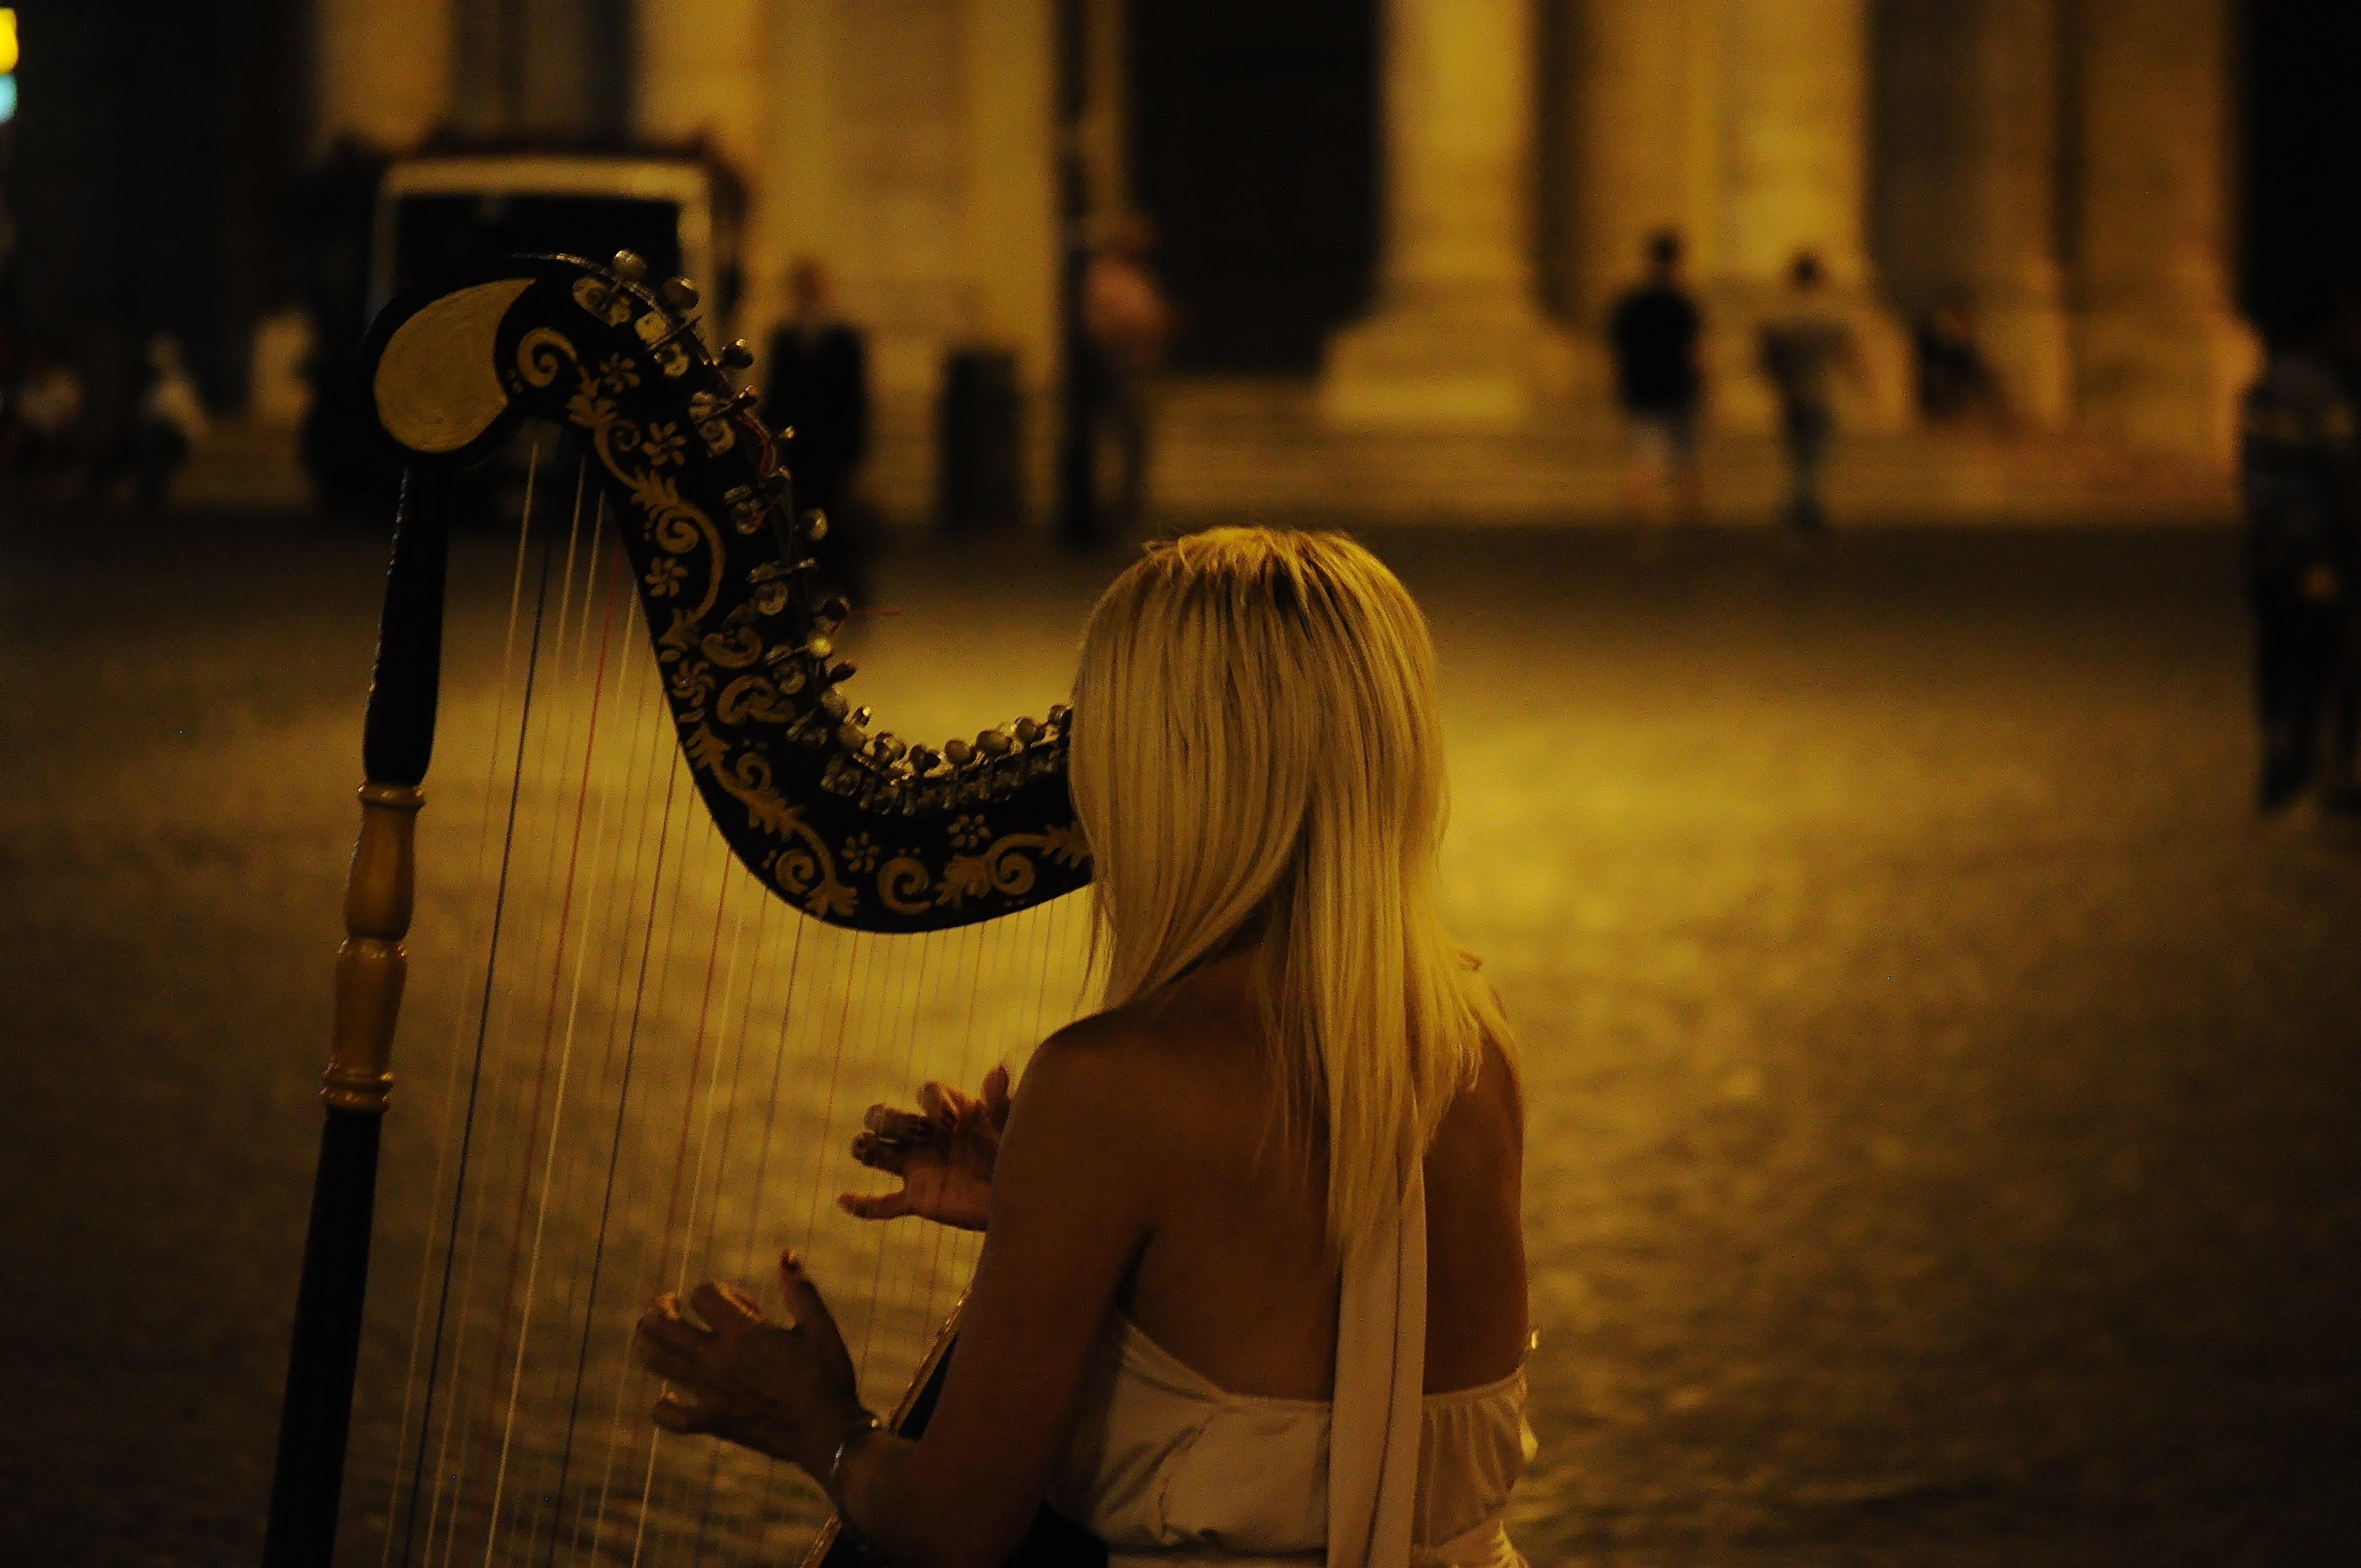 Woman Playing Harp